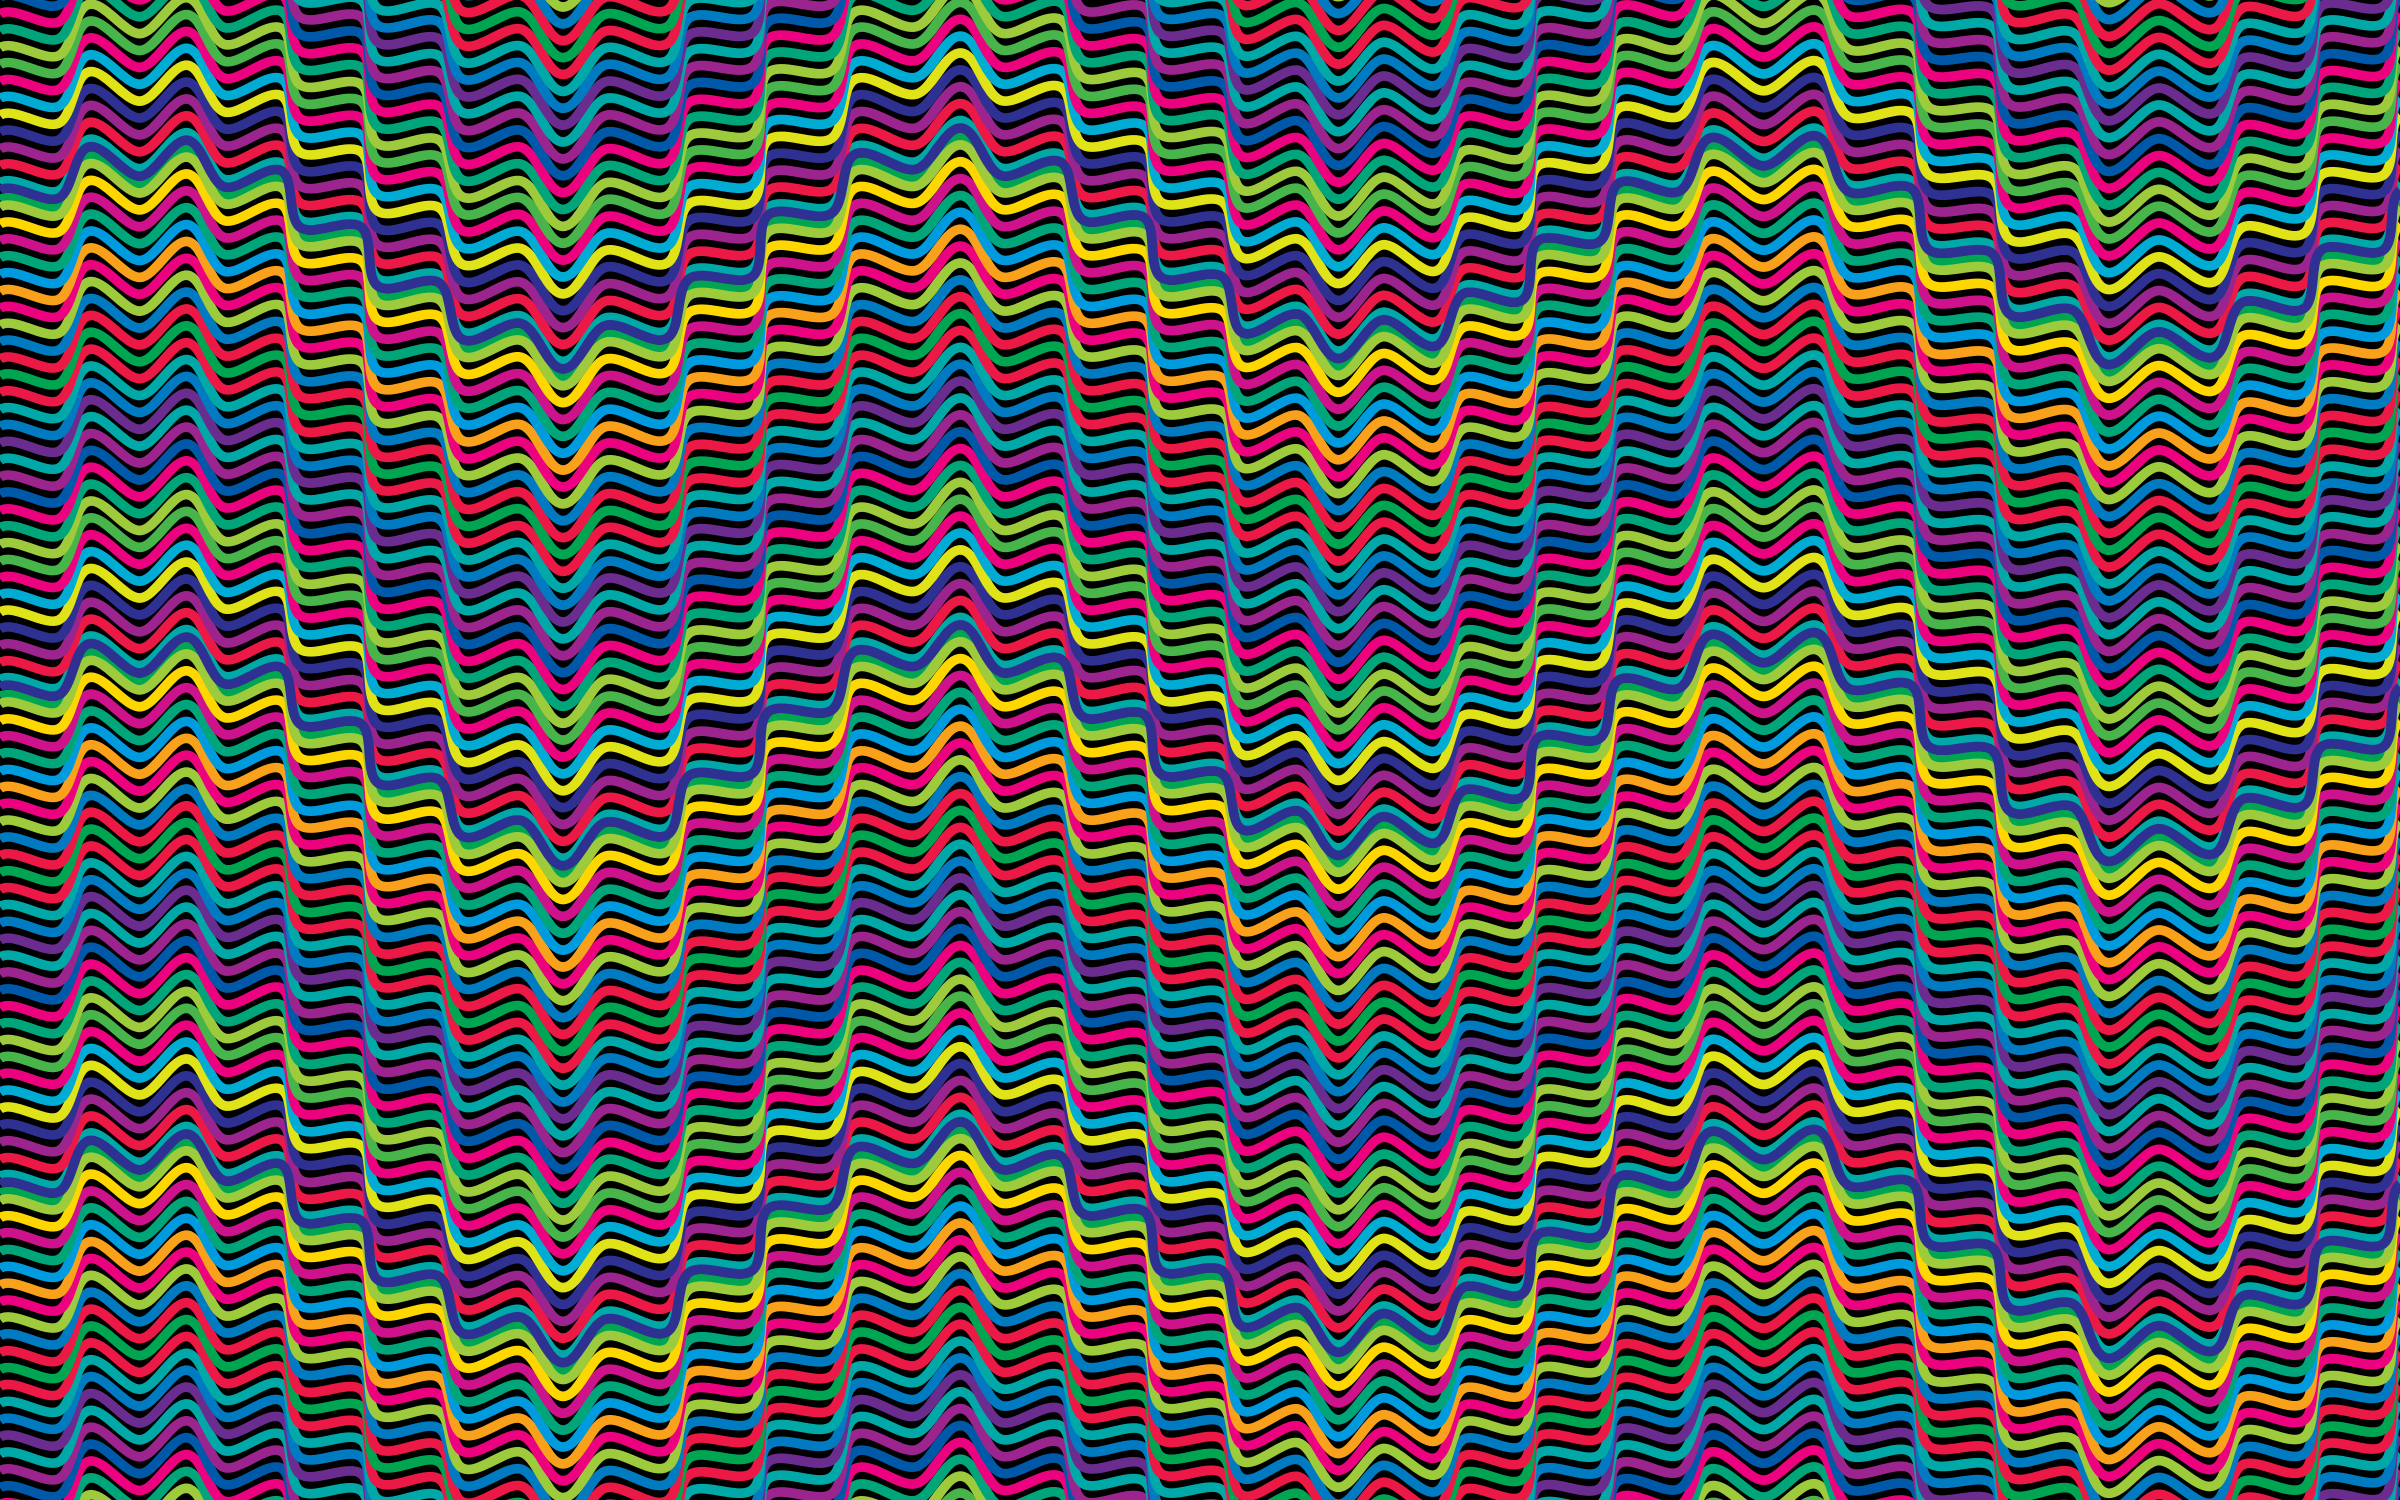 Prismatic Waves Background 2 by GDJ